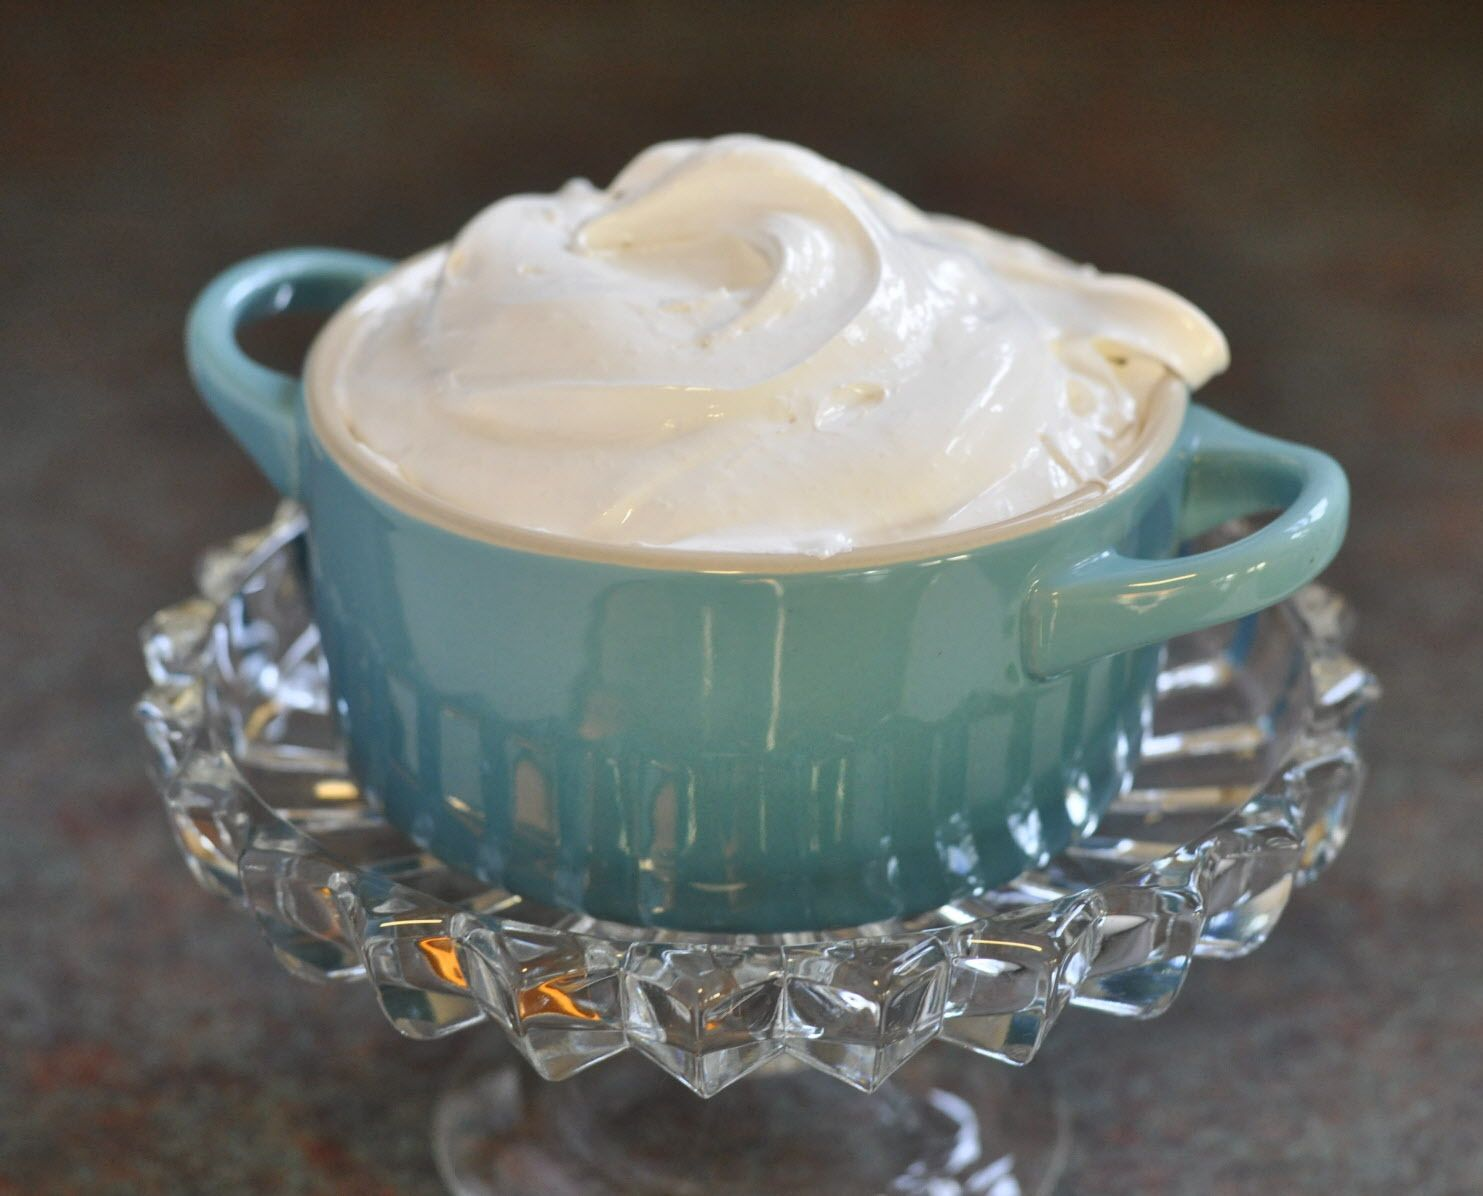 Homemade marshmallow fluff is pretty easy to whip up #homemademarshmallowfluff